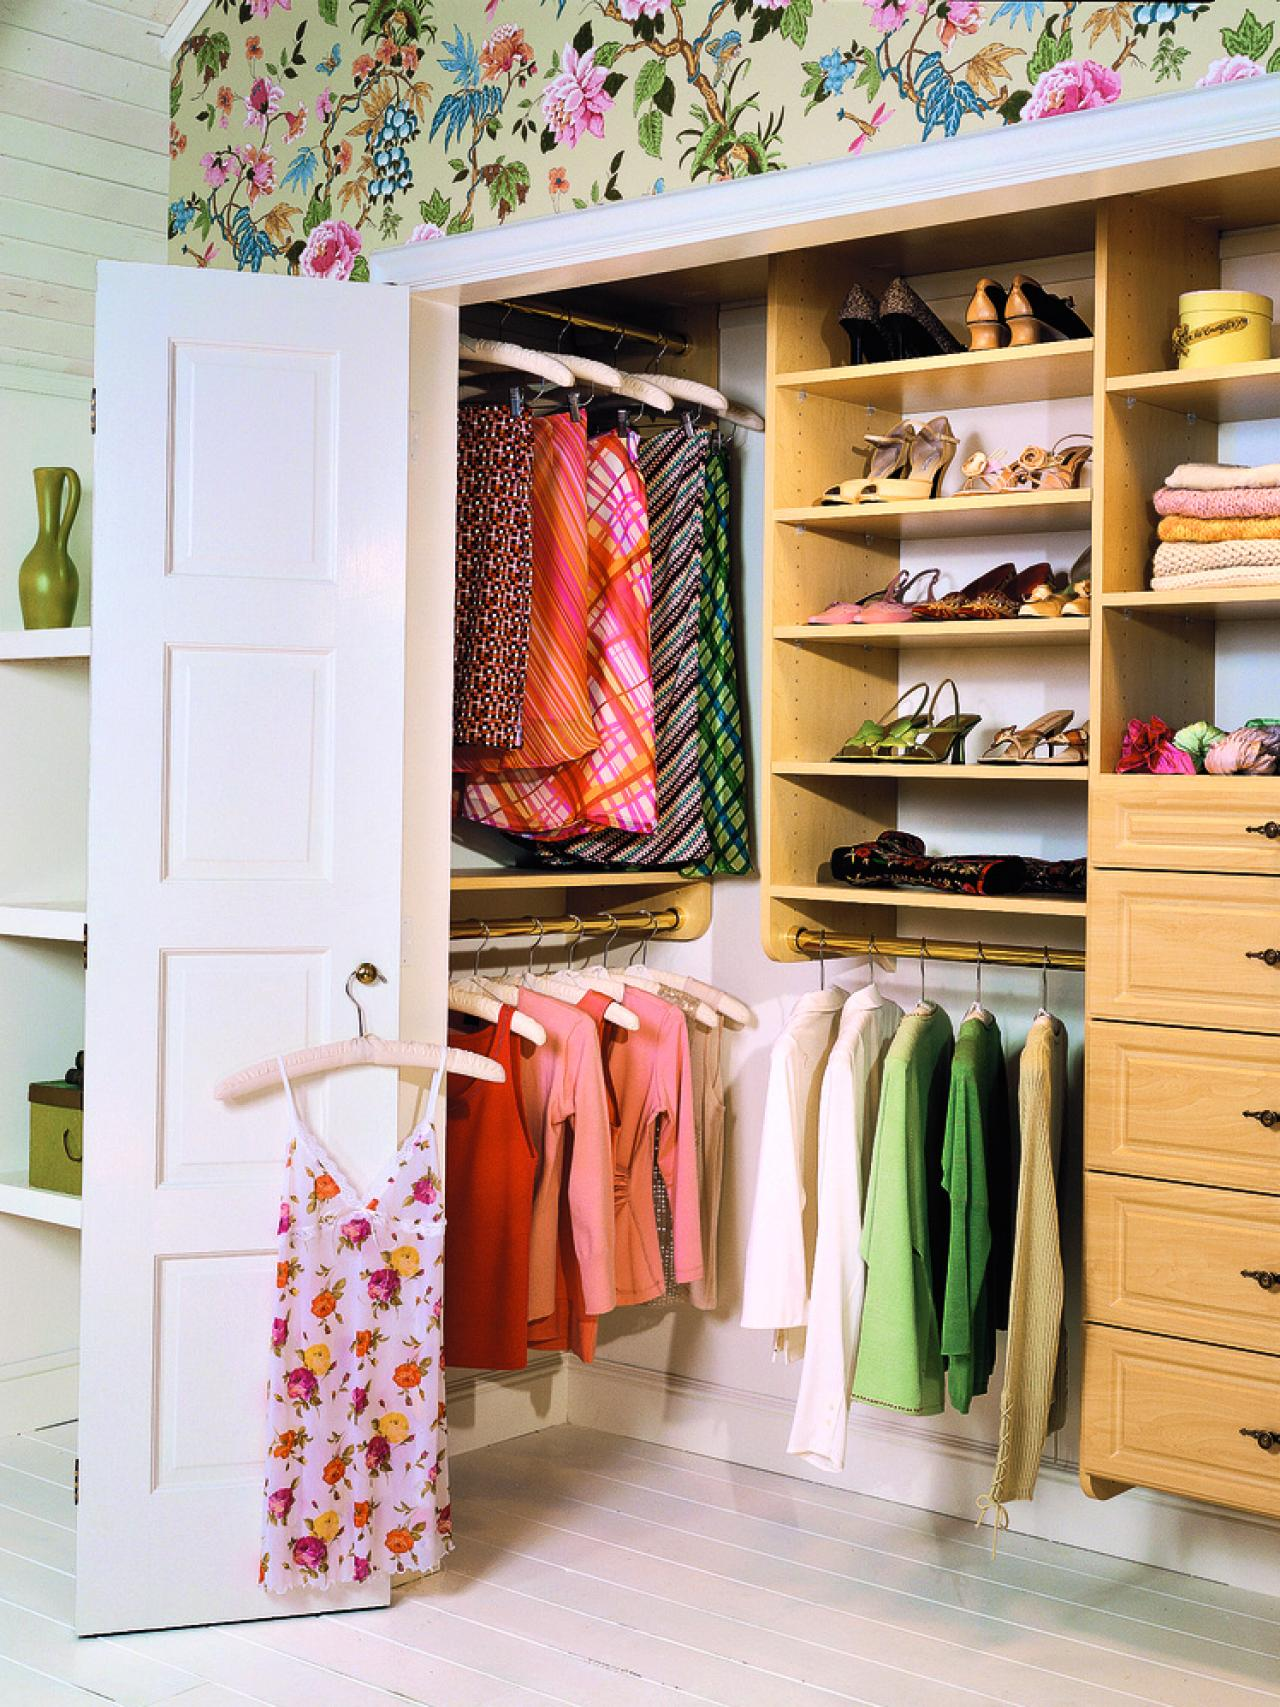 Amusing Design Of The Closet Organizers Ideas With Brown Wooden Shelves  Added With White Wall And